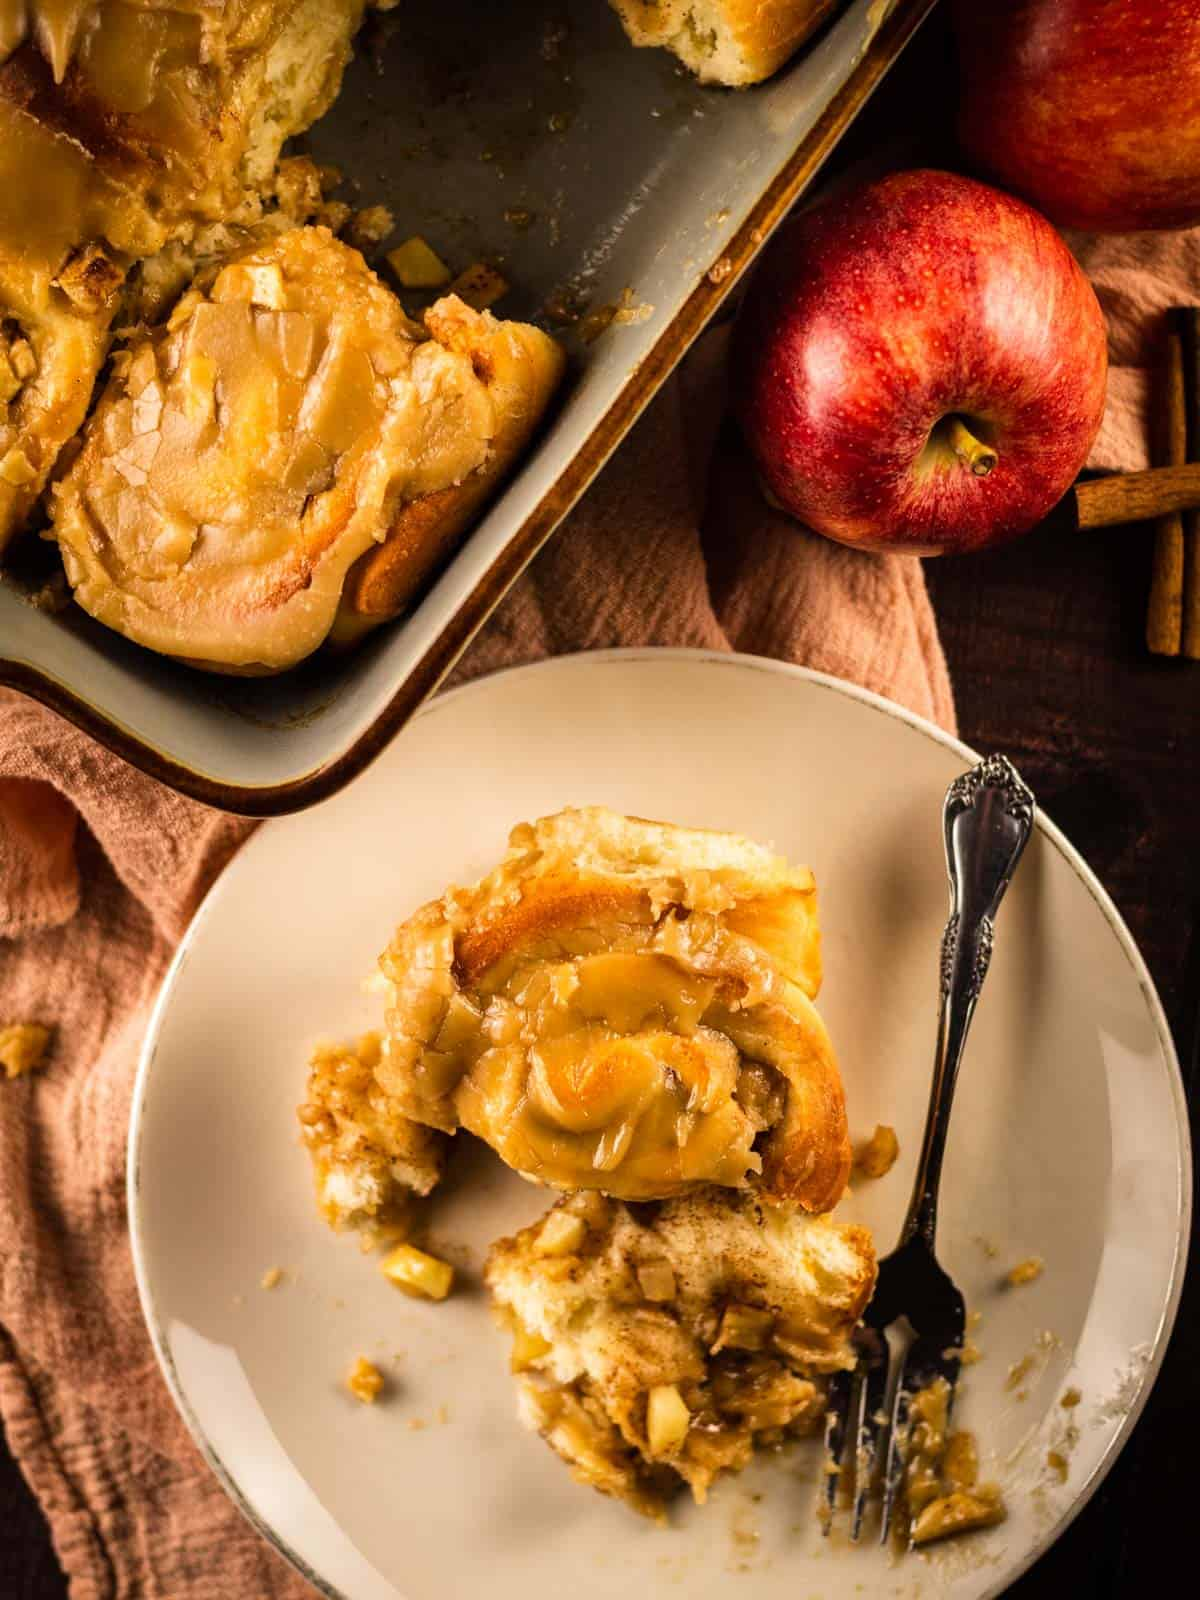 apple cinnamon roll on a plate and in a pan with fresh apples next to it